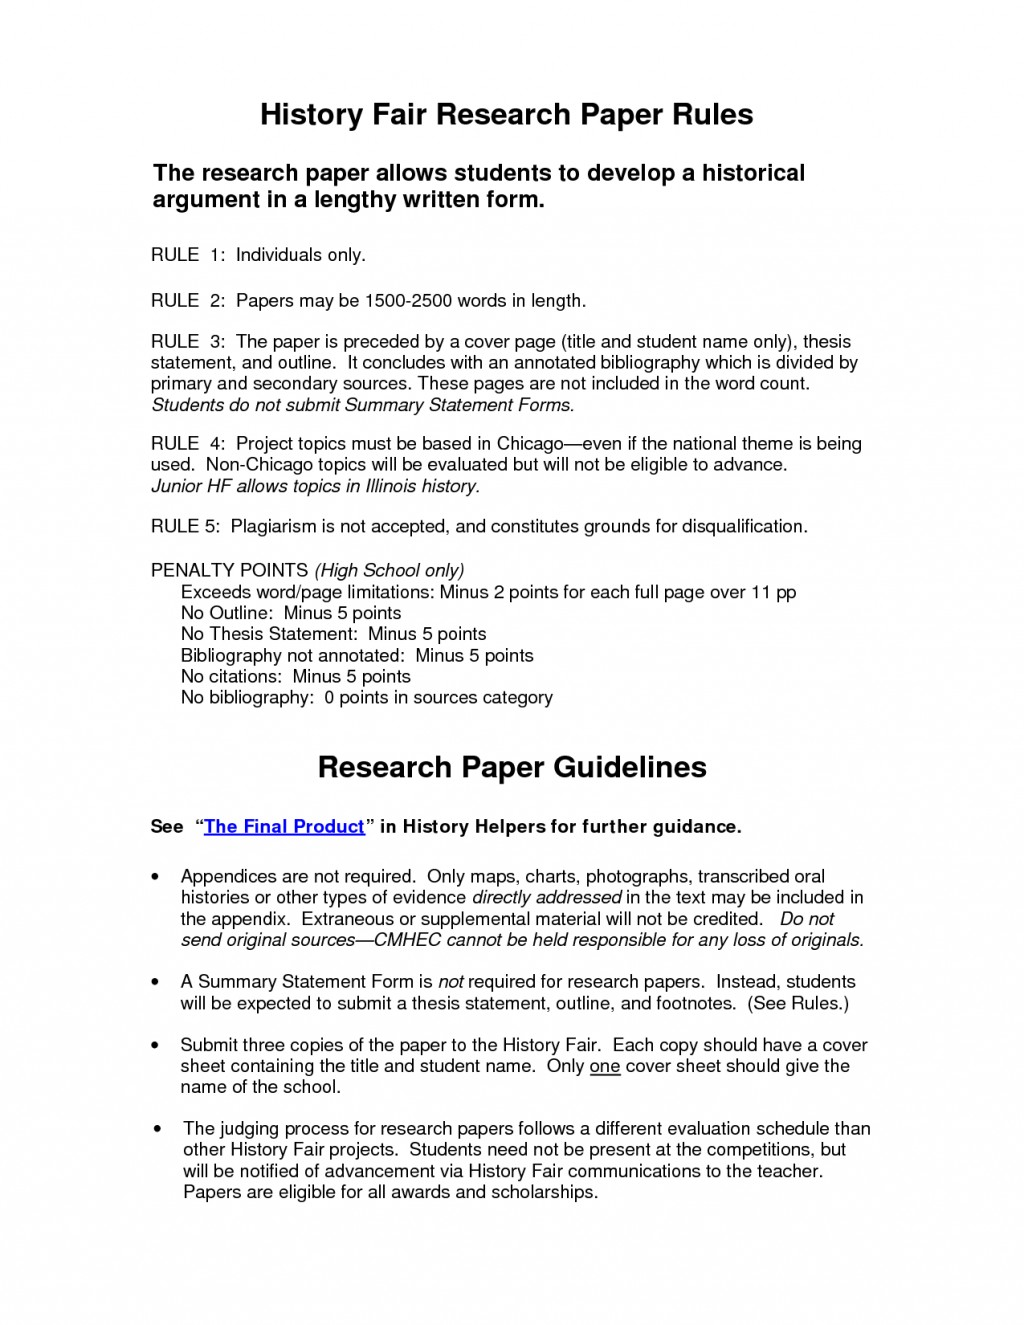 008 Annotated Bibliography Research Paper Topics History Fair Example 83109 Singular Large